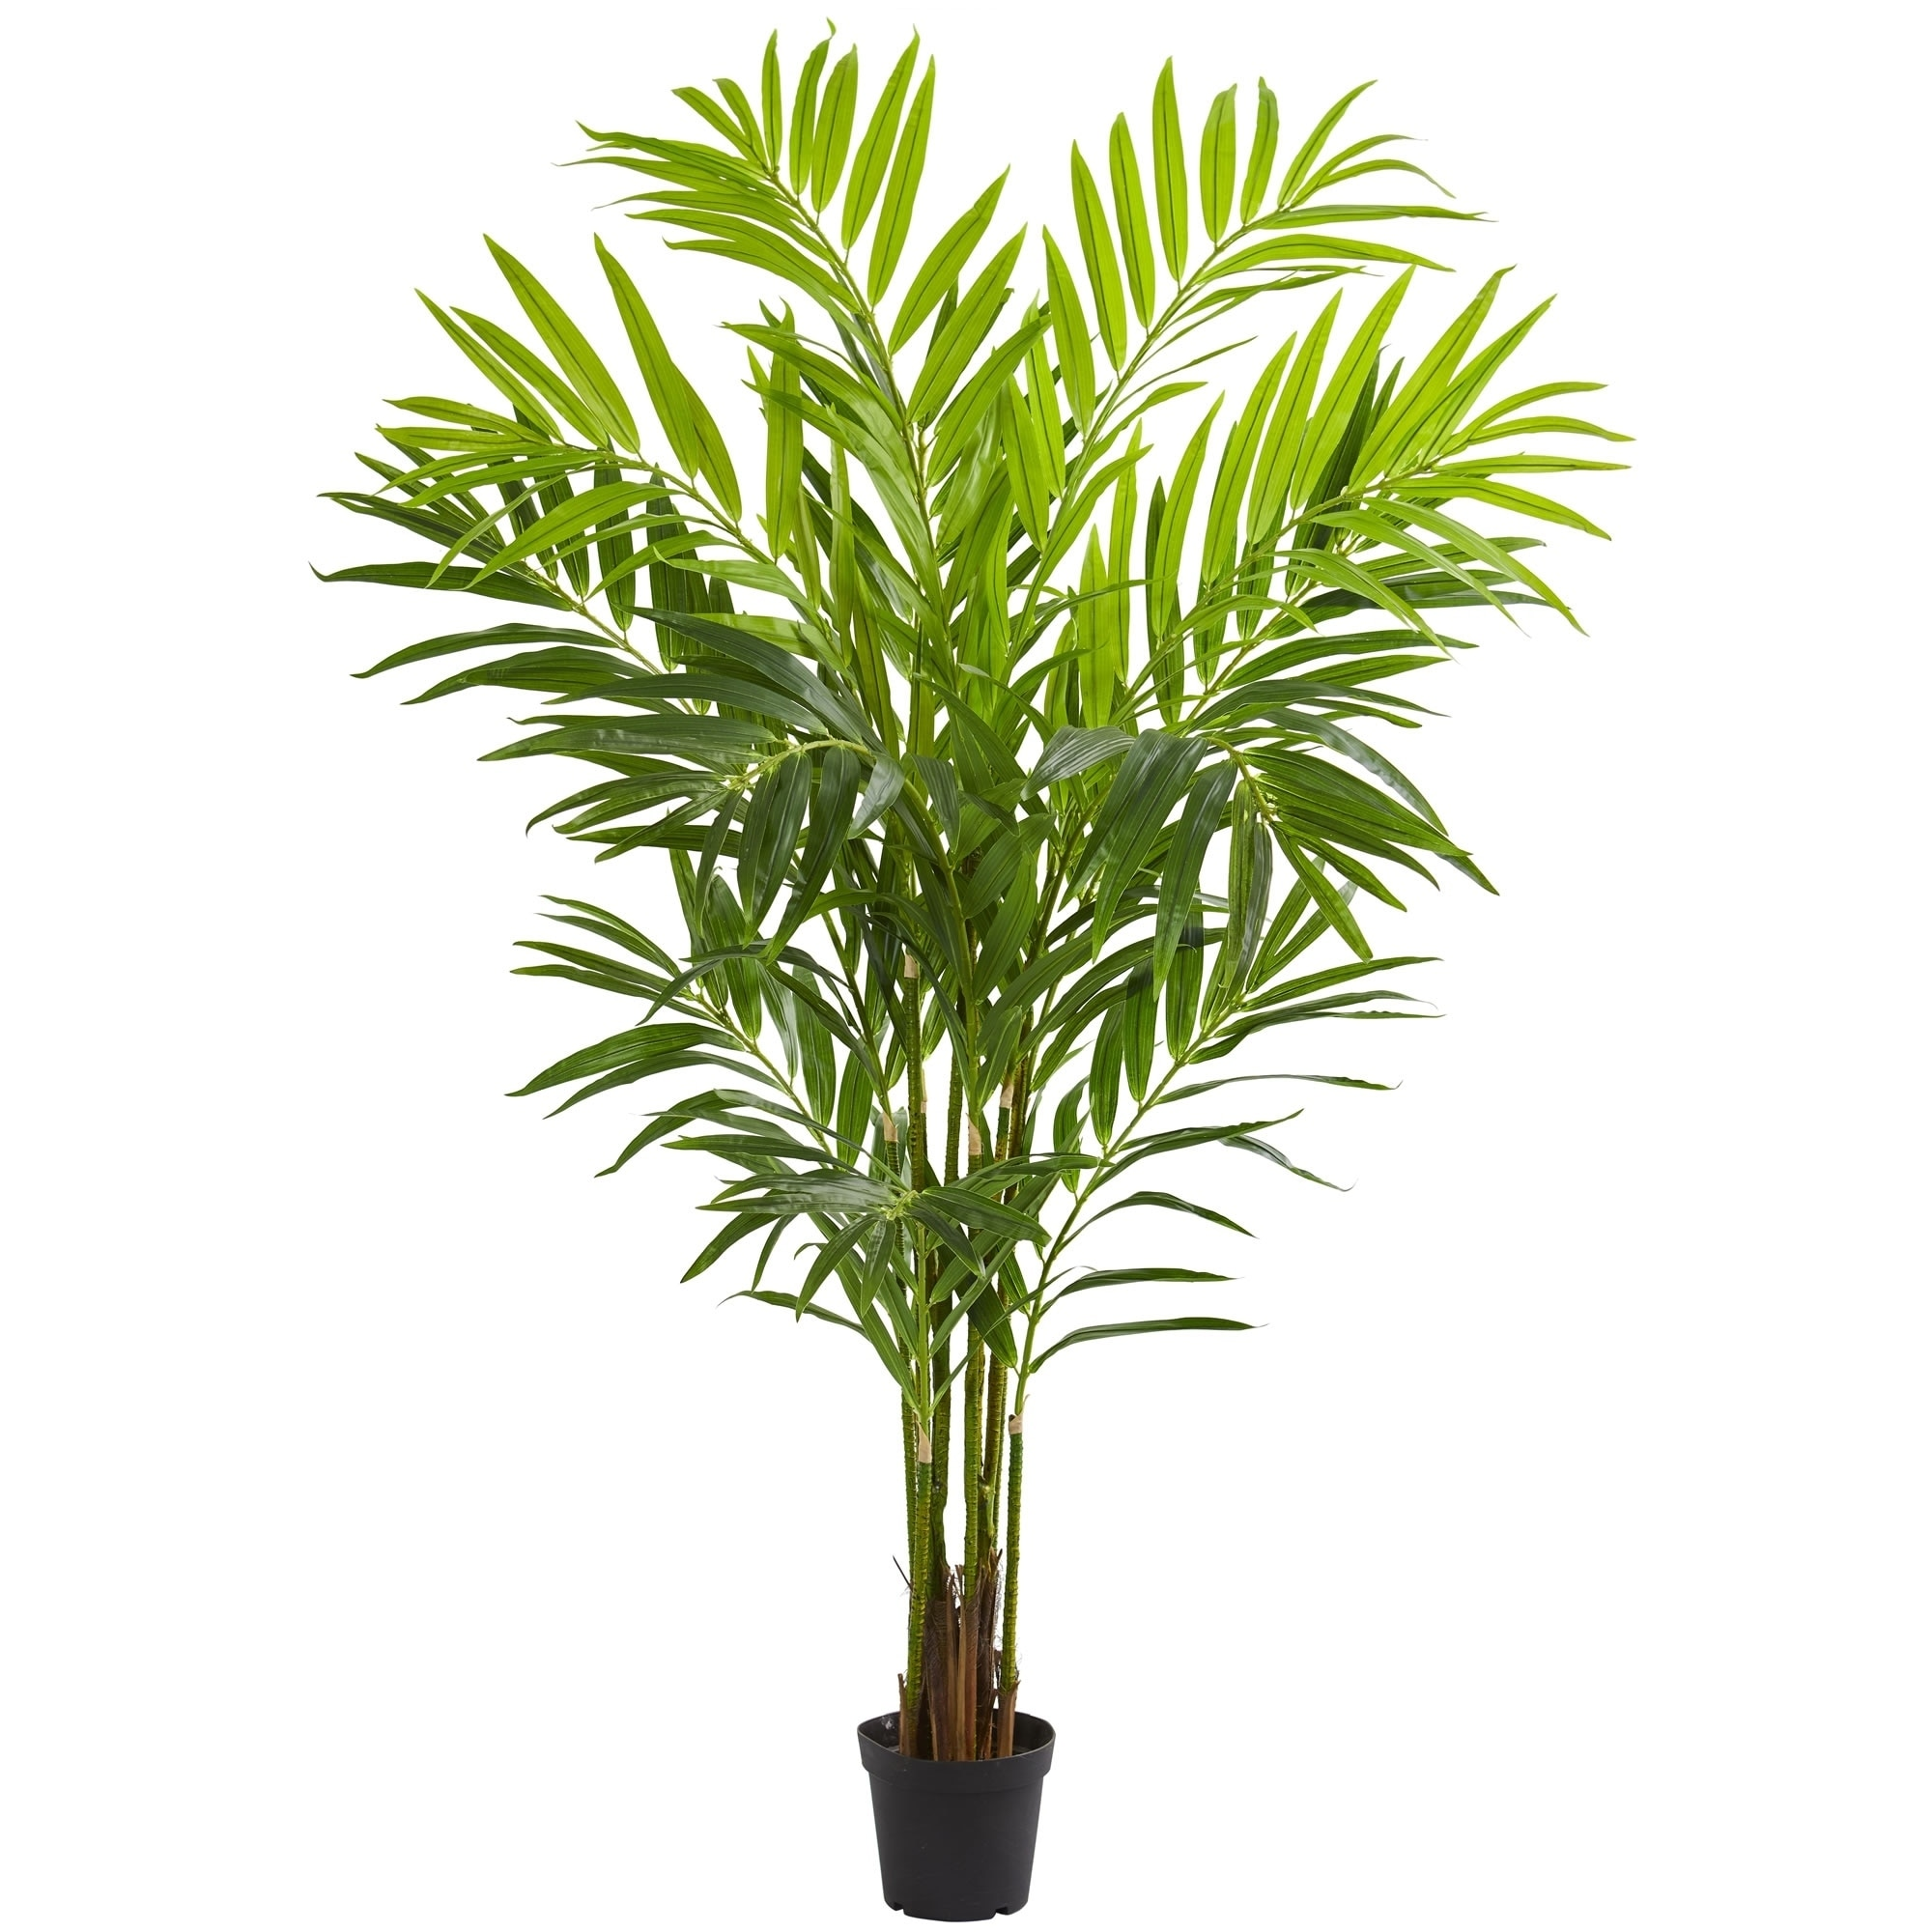 Golden Cane Palm Tree Artificial Plant w// 2 Trunks and Hundreds of Leaves 4 ft